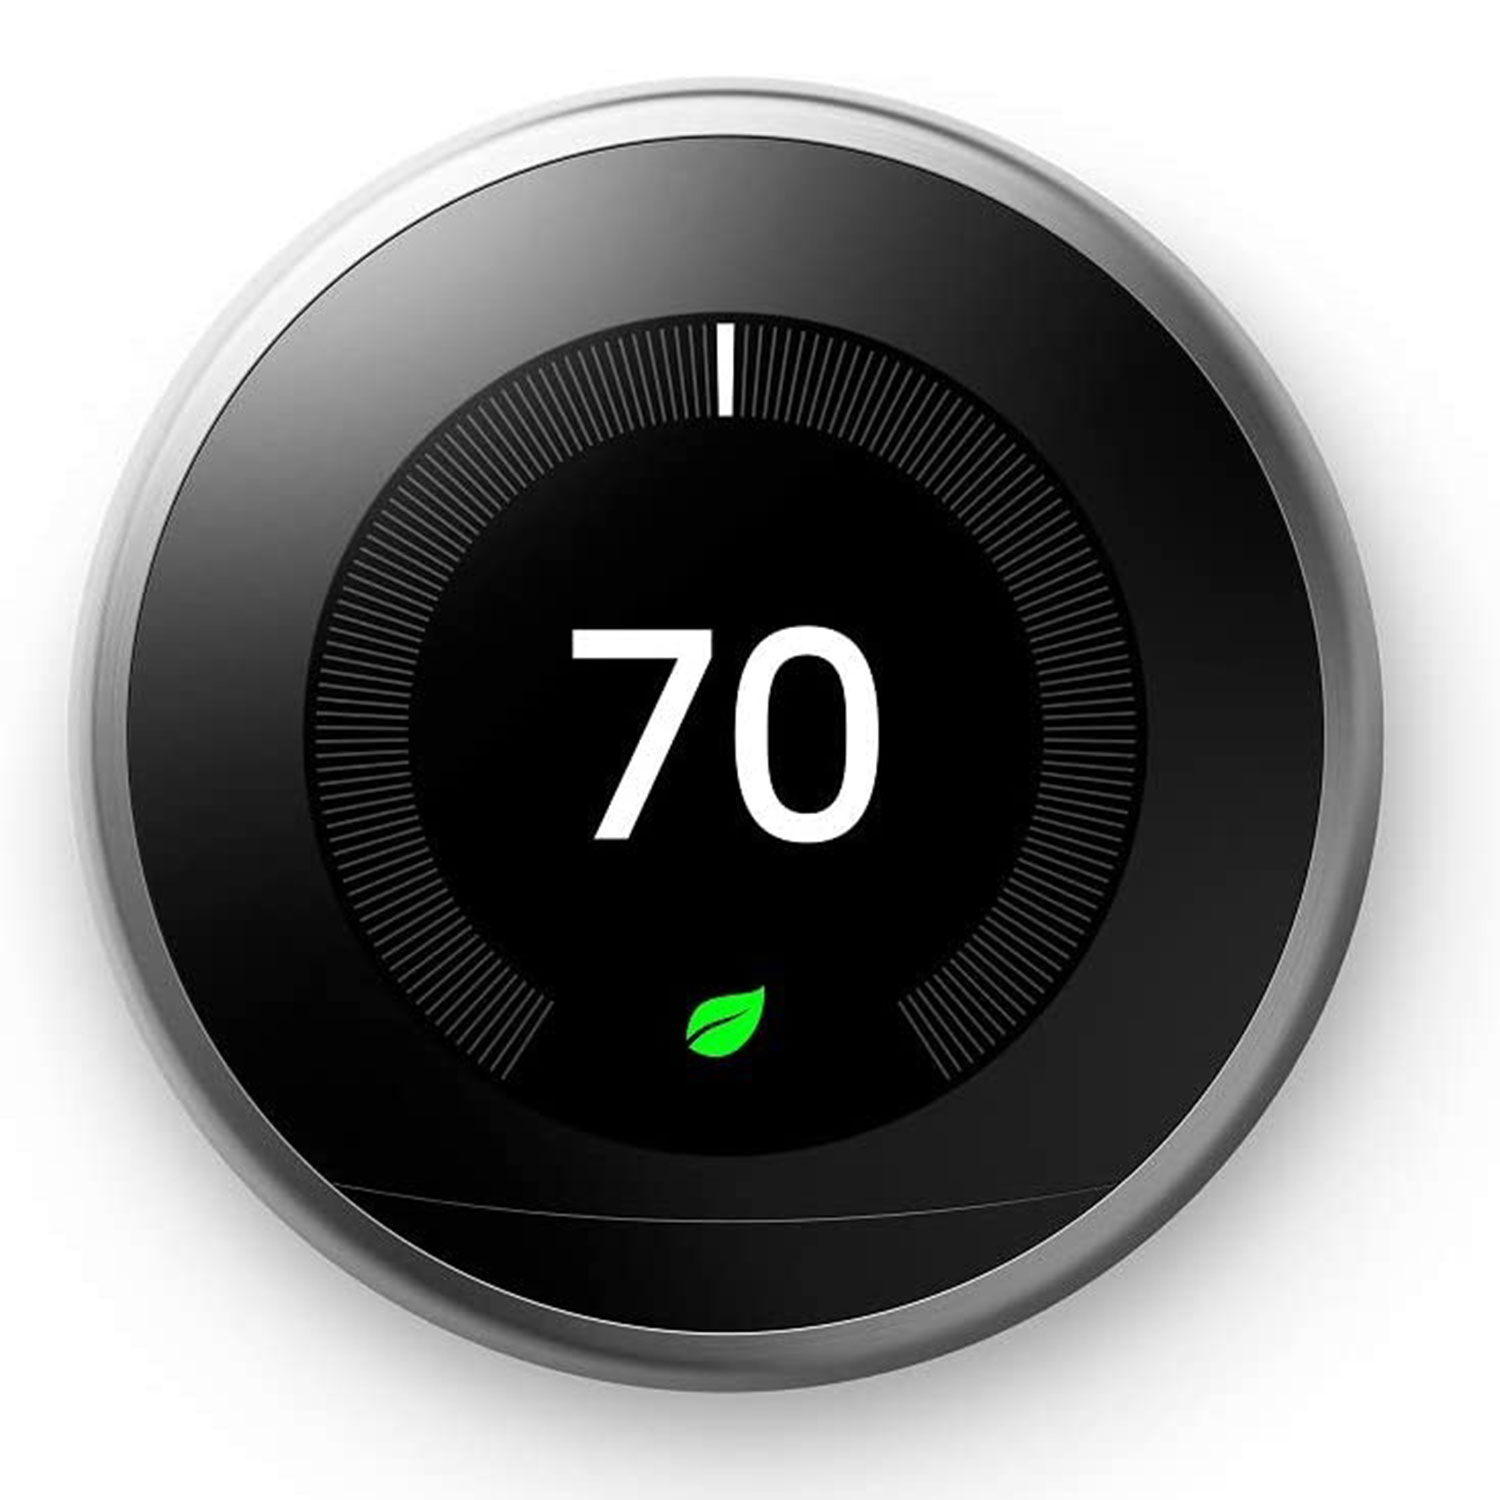 google nest learning thermostat 3 generation stainless steel alexa